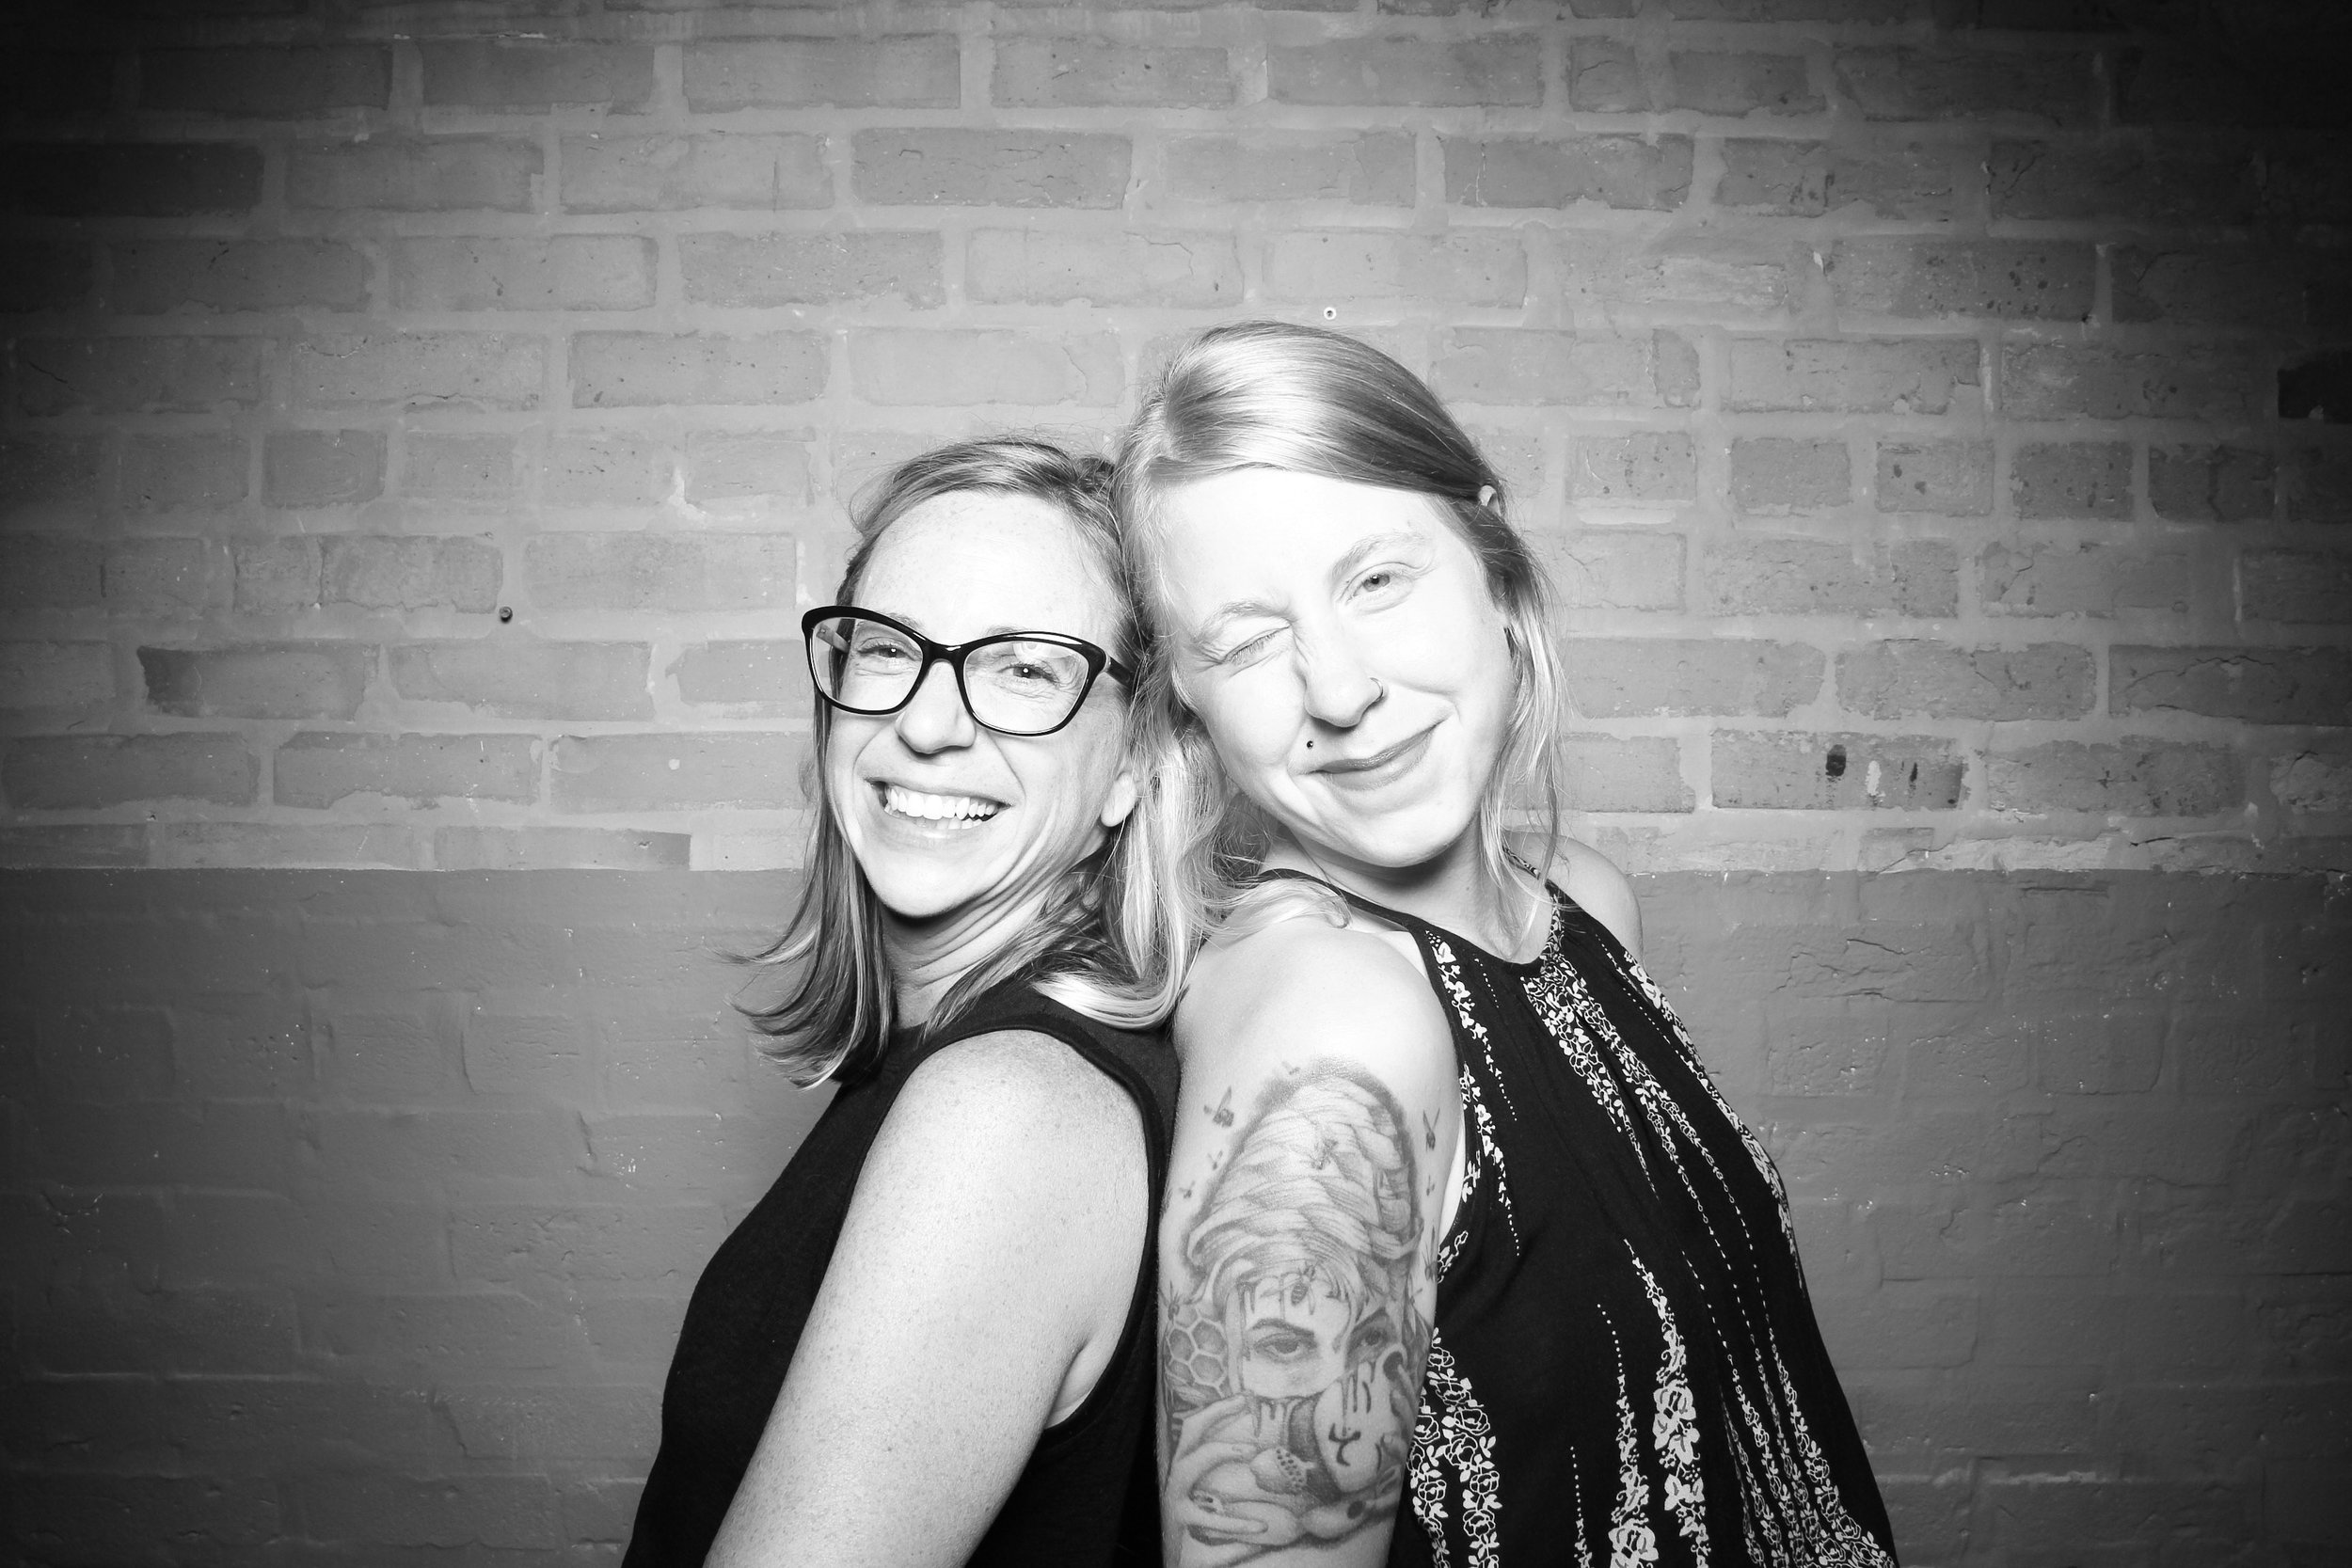 Chicago_Vintage_Wedding_Photobooth_Fairlie_30.jpg